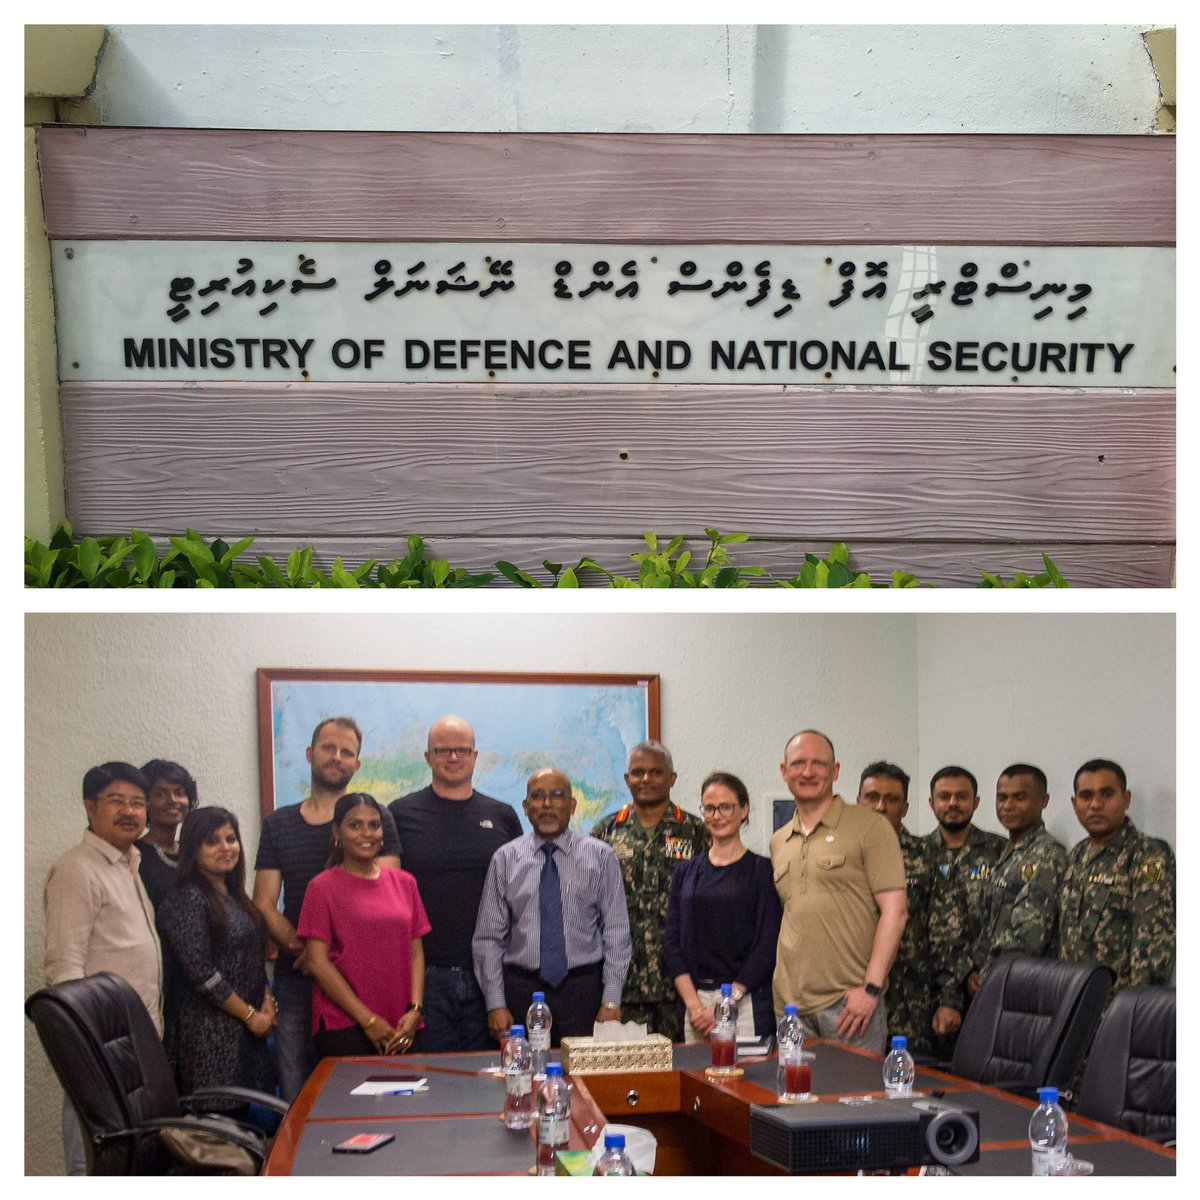 Today we met with the Maldivian Ministry of Defense and National Security as a stakeholder in #DronesForGood https://t.co/7eyJPeAizF